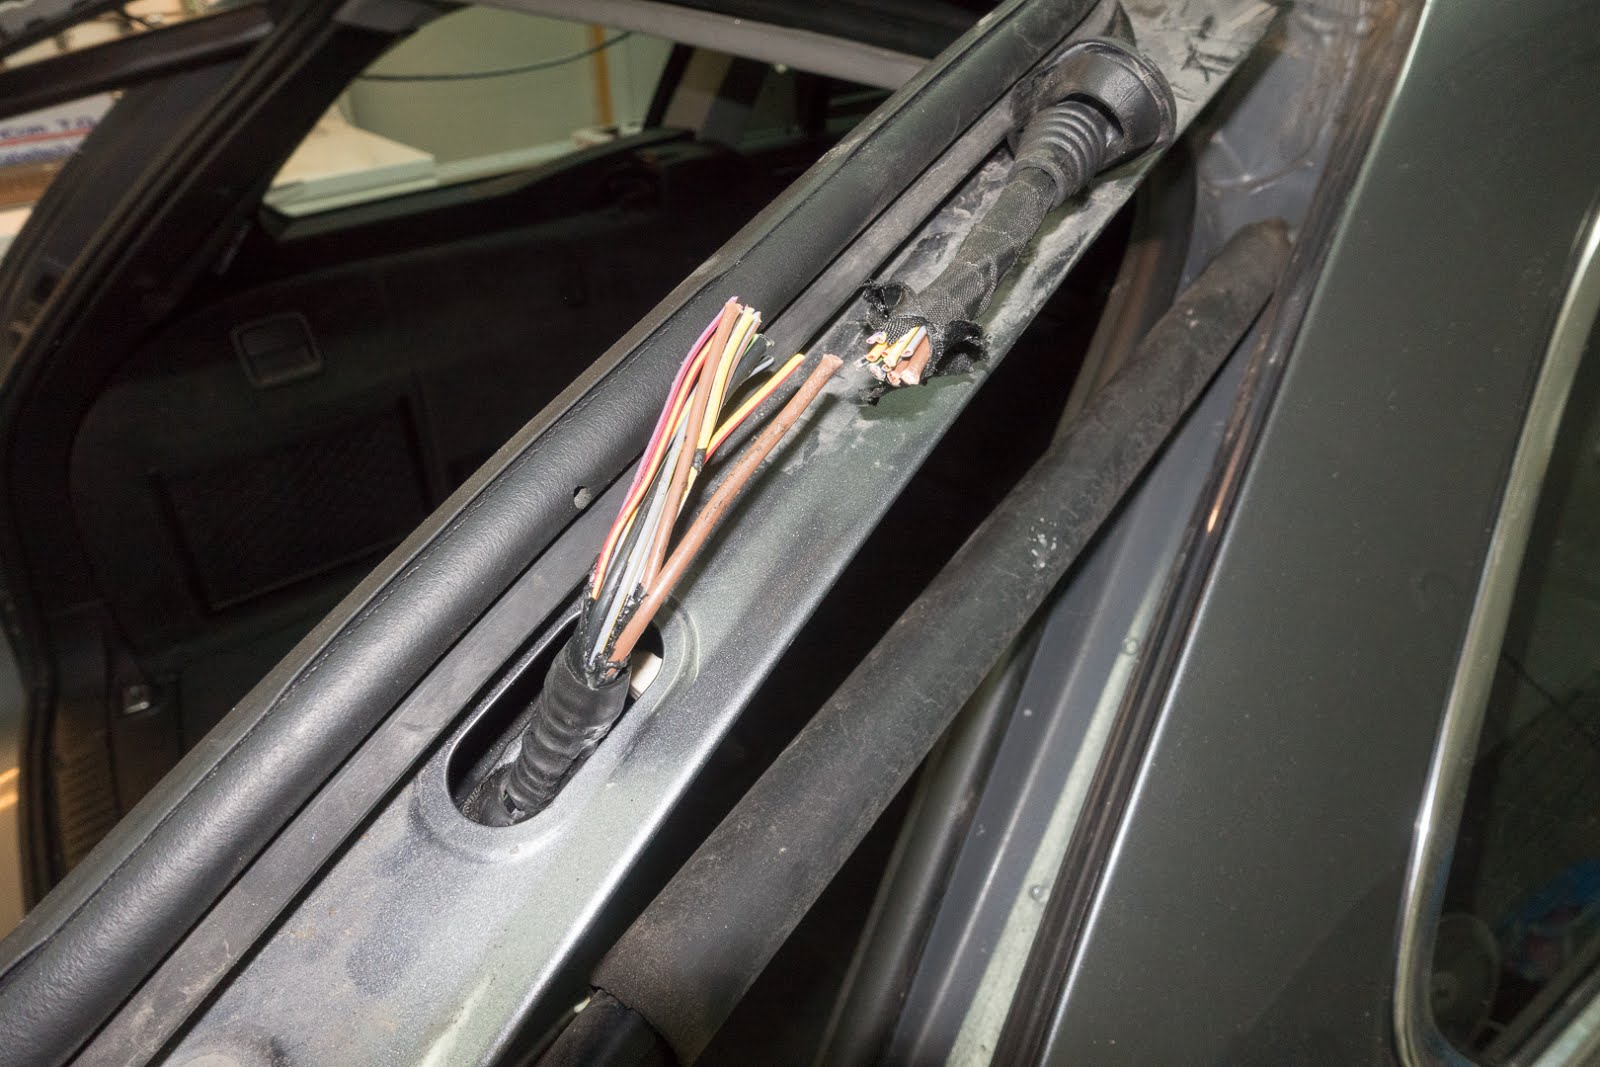 The Fix It Blog Sorting Things Out Bmw 535xi Touring E61 Tailgate Plastic Wiring Harness Clips Car Pull Old Through Hinge Area Cut Leaving At Least 6 Of To Give You Space Make Connections In